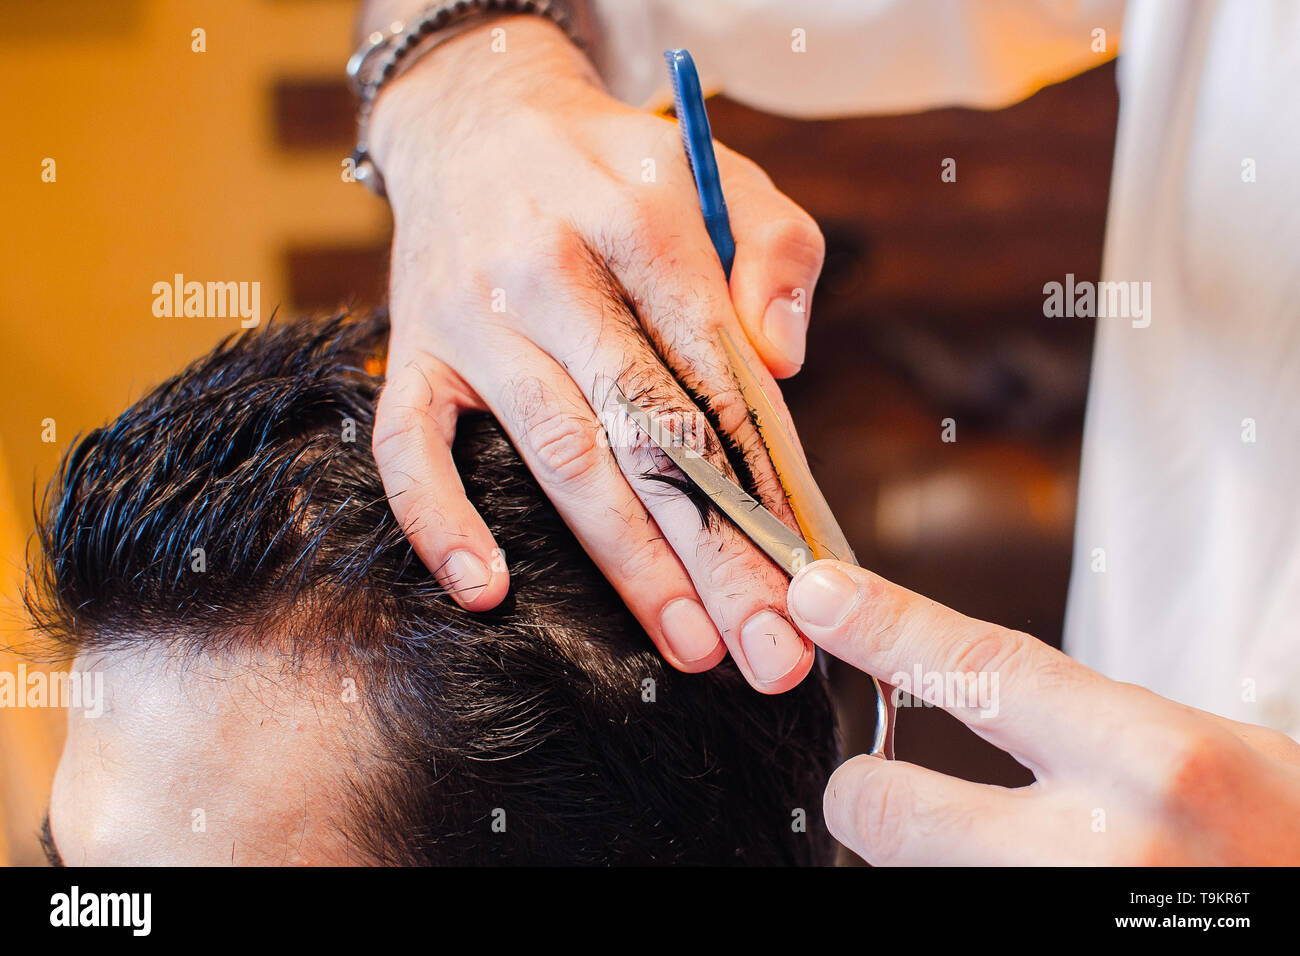 Barber shears the hair on her head with scissors. Haircut close-up. Barber Shop. - Stock Image